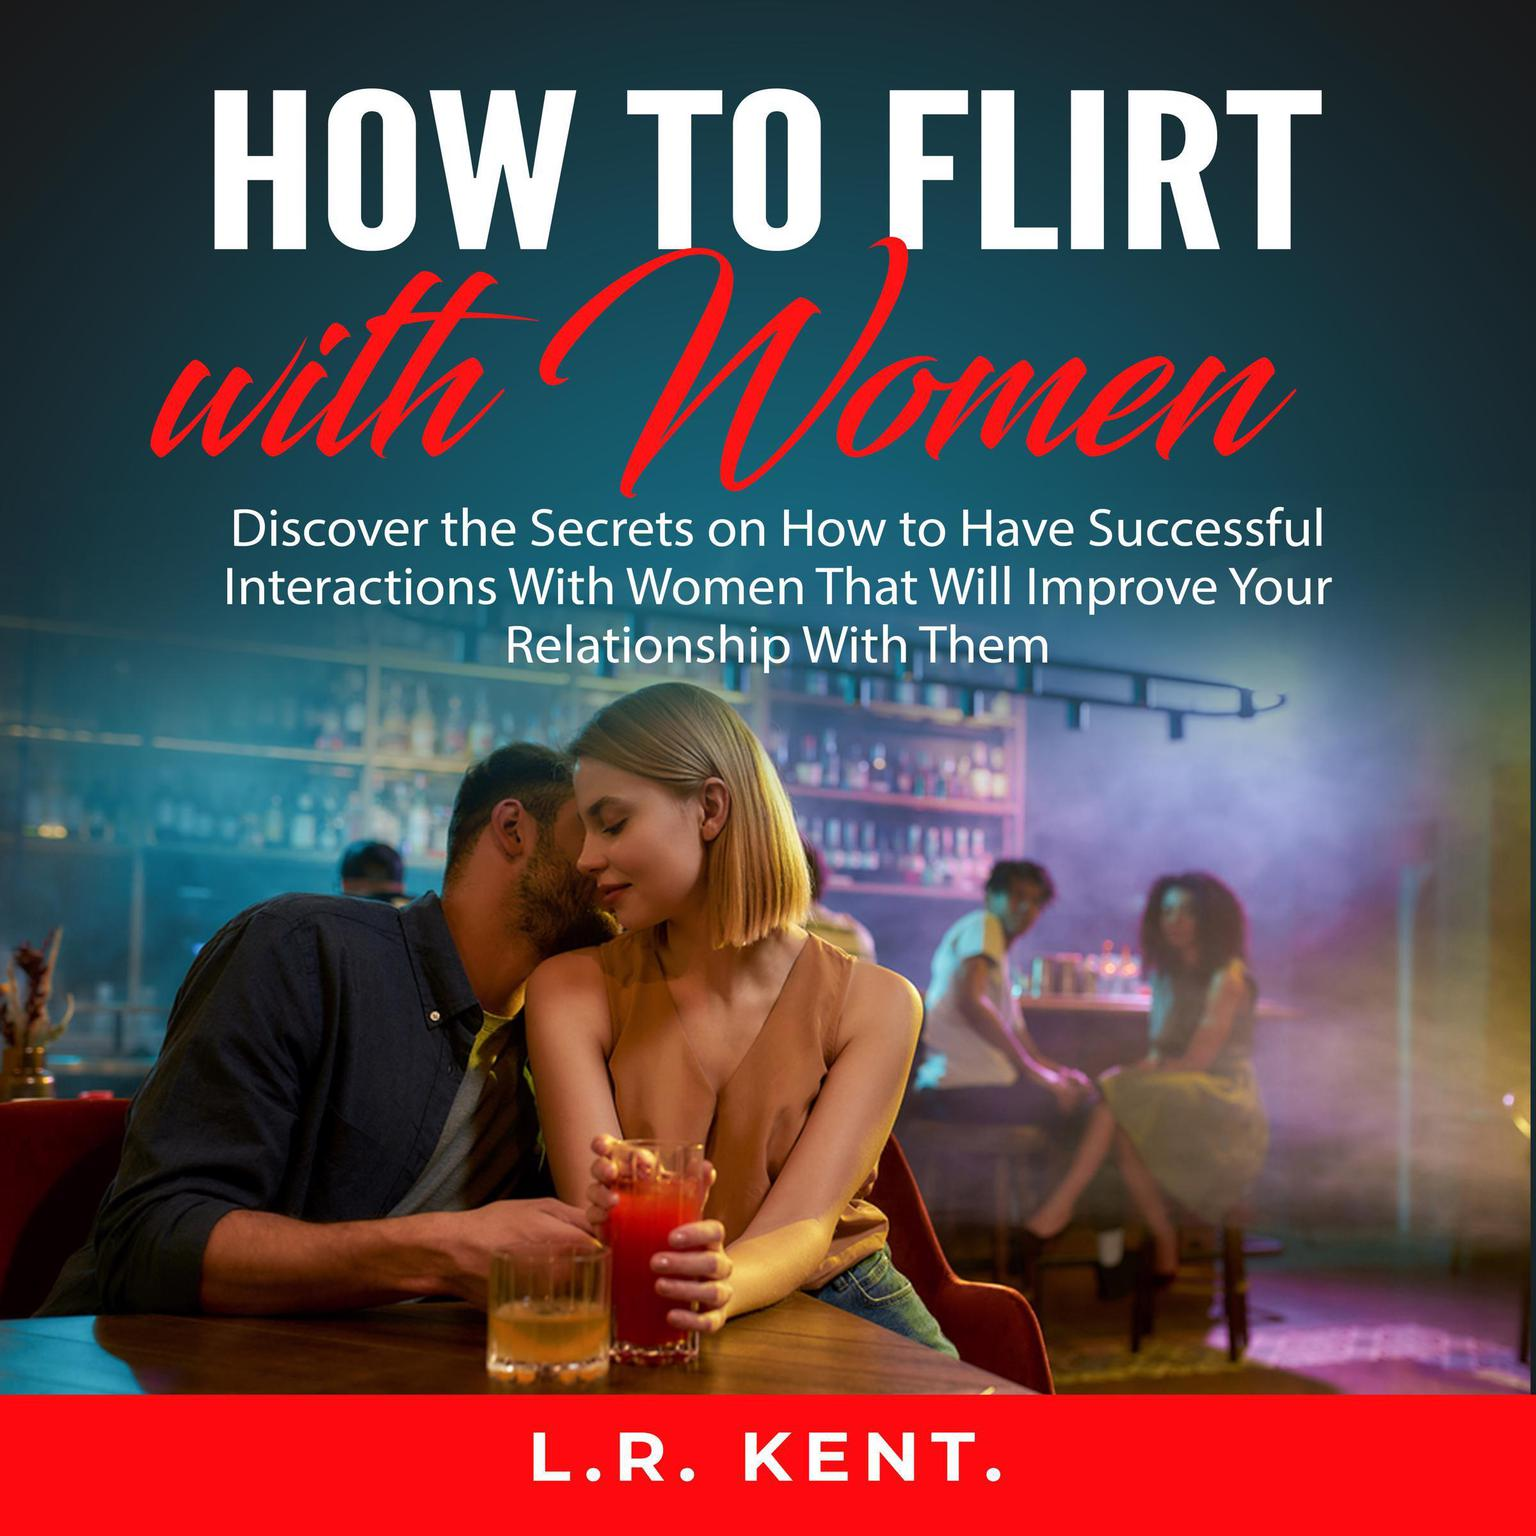 How to Flirt with Women: Discover the Secrets on How to Have Successful Interactions With Women That Will Improve Your Relationship With Them Audiobook, by L.R. Kent